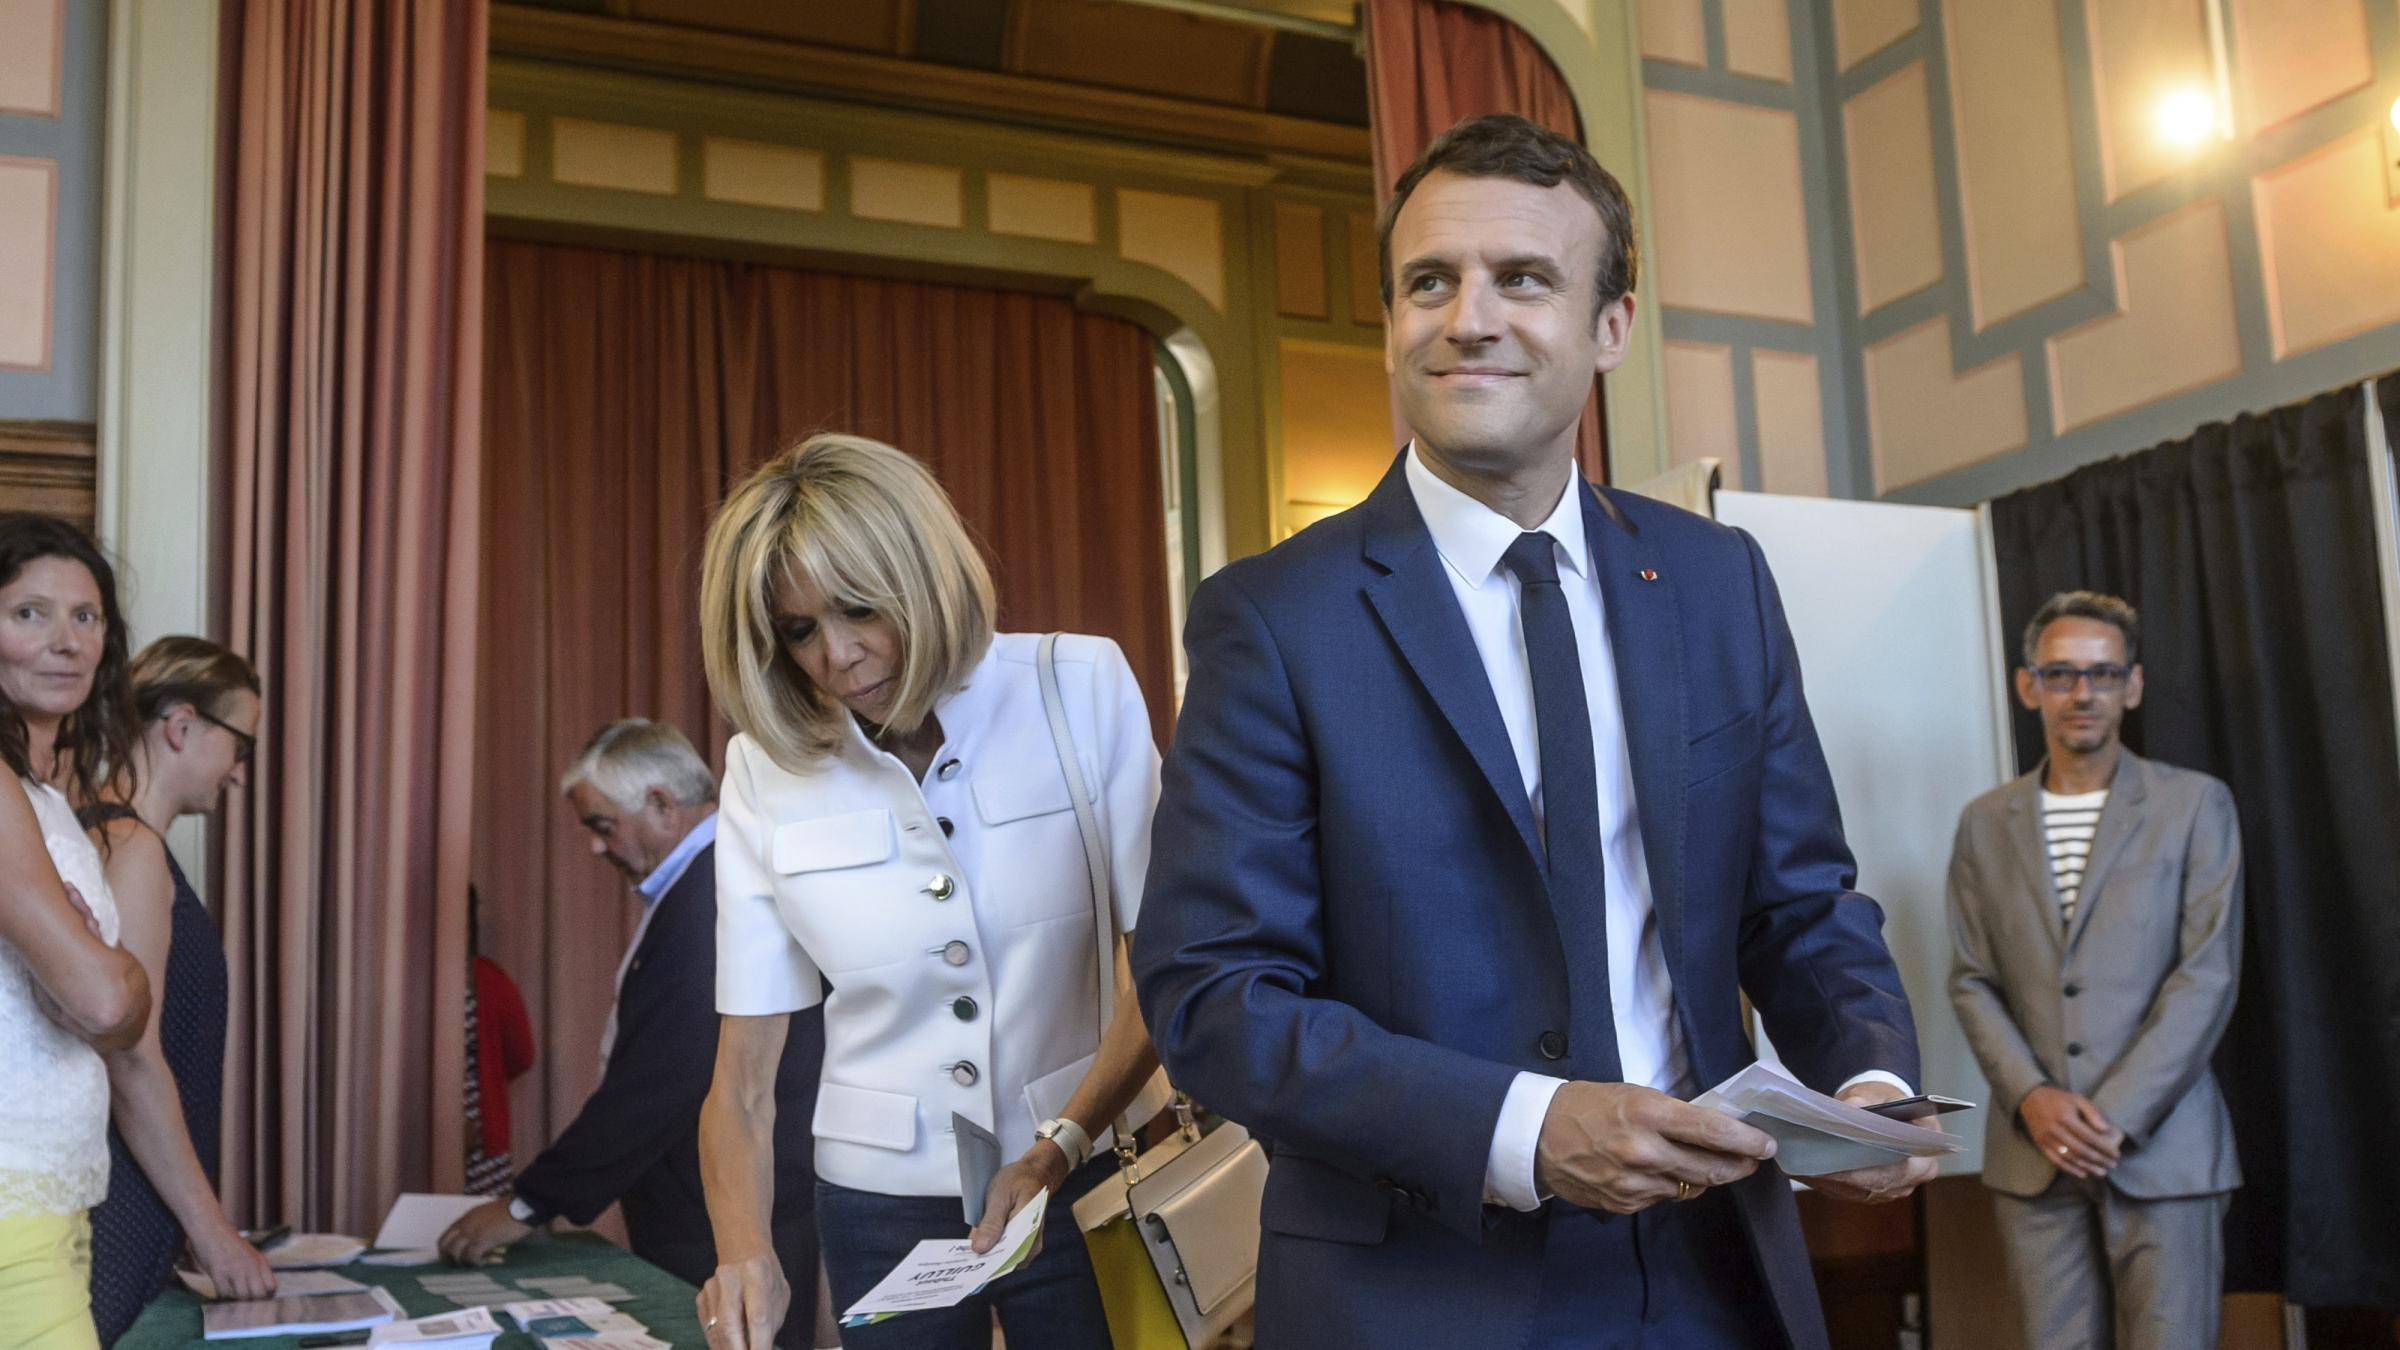 Macron set for landslide win in French elections